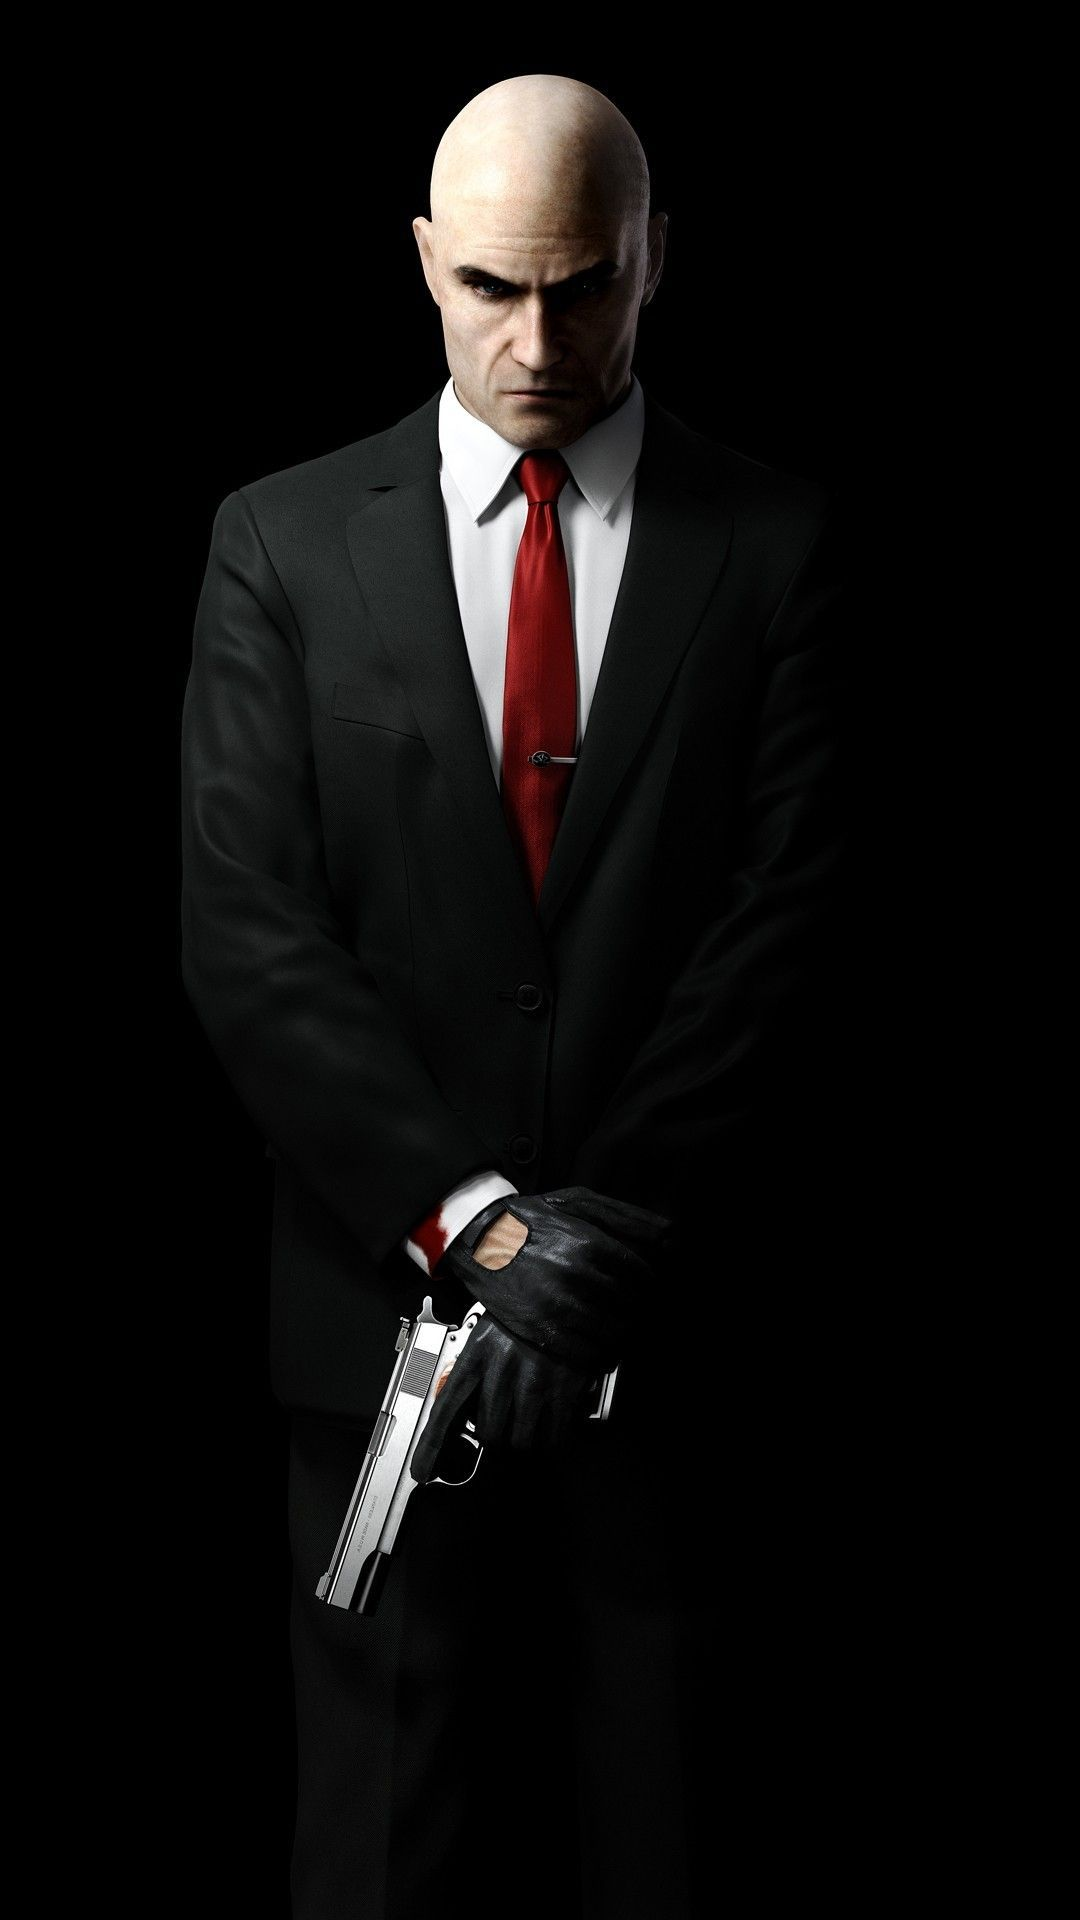 Hitman Iphone Wallpapers Top Free Hitman Iphone Backgrounds